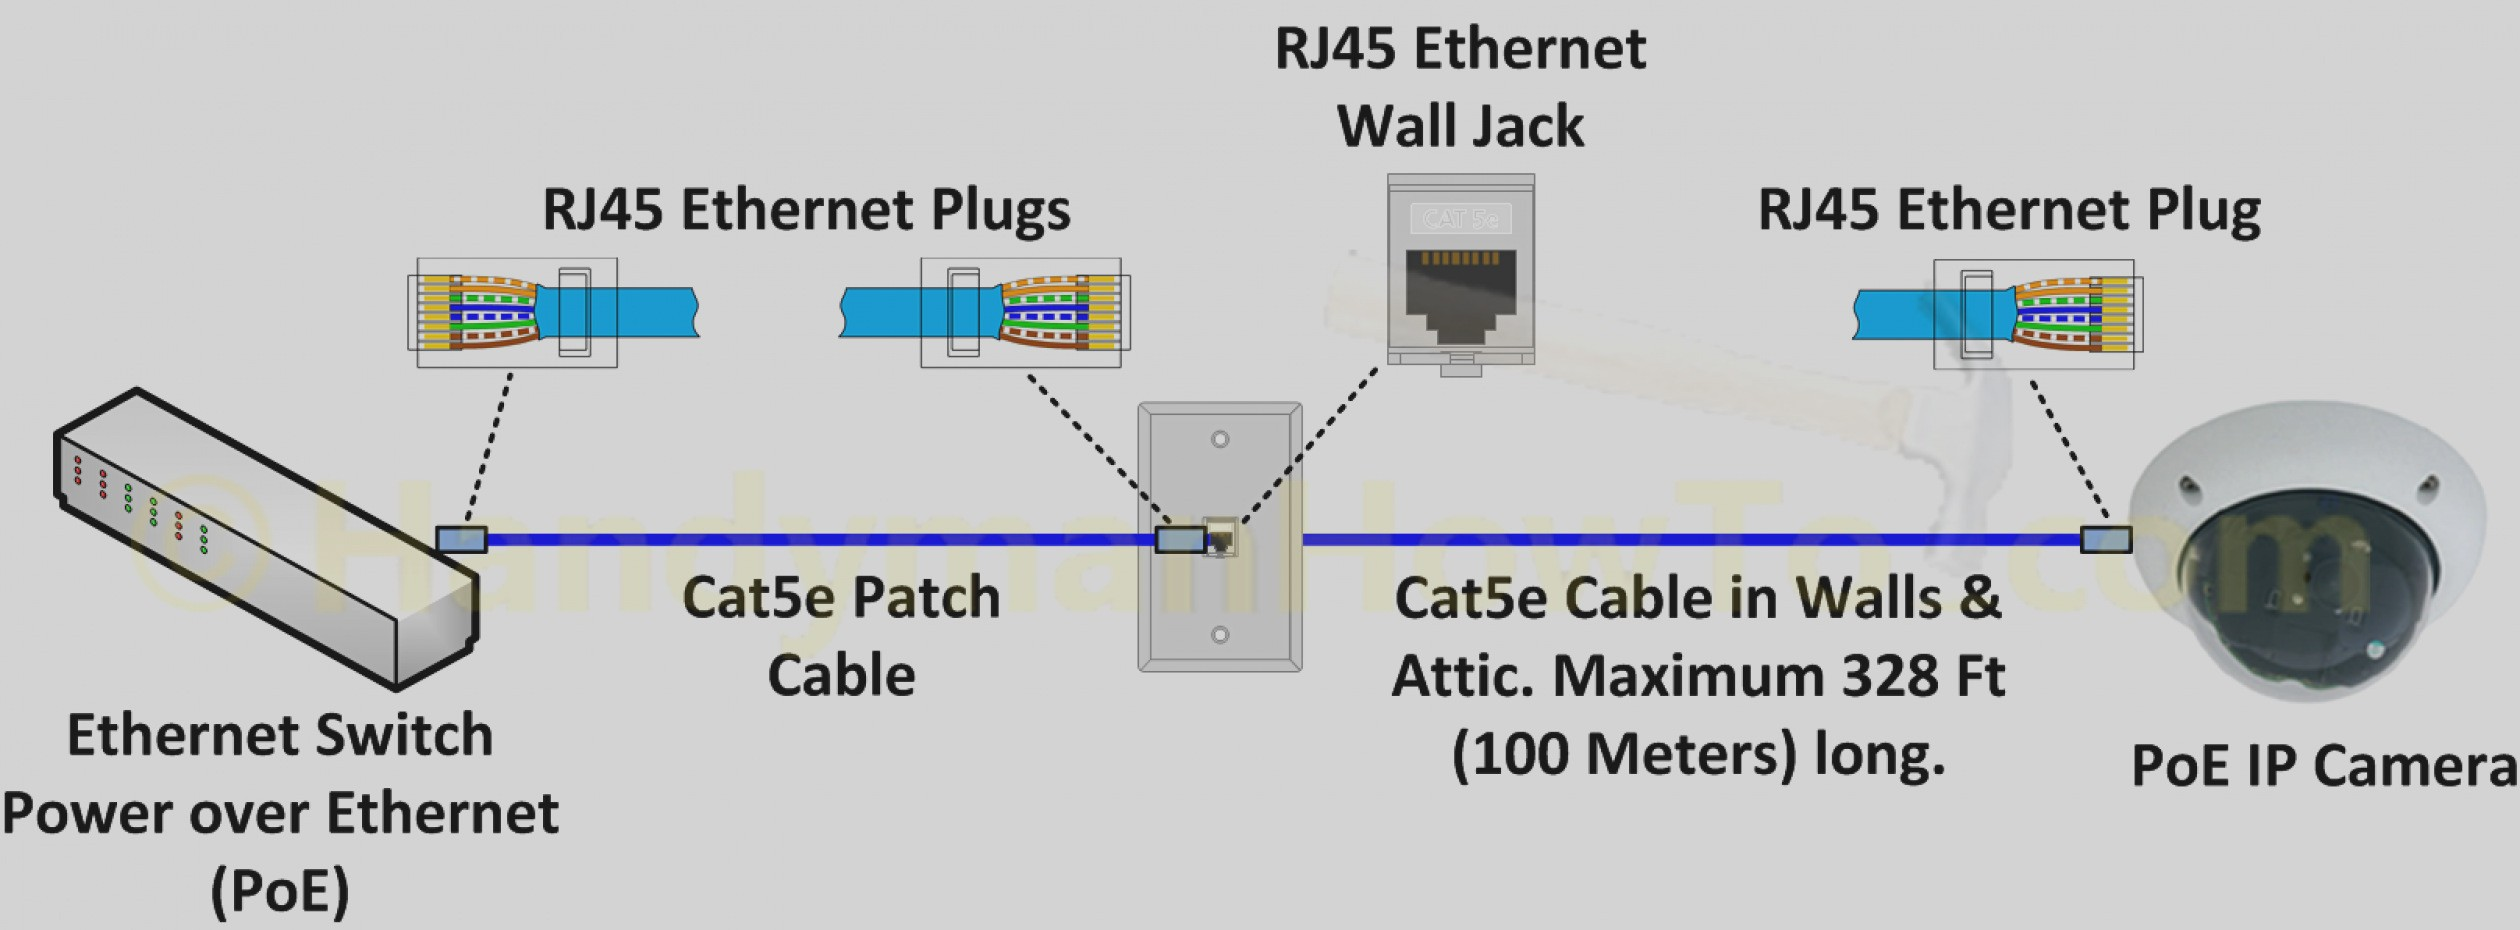 Cat5e Wiring Diagram For Nvr - Wiring Diagrams Value on network cable wiring diagram, network data wiring diagram, network switch wiring diagram, network server wiring diagram, network routers diagram,